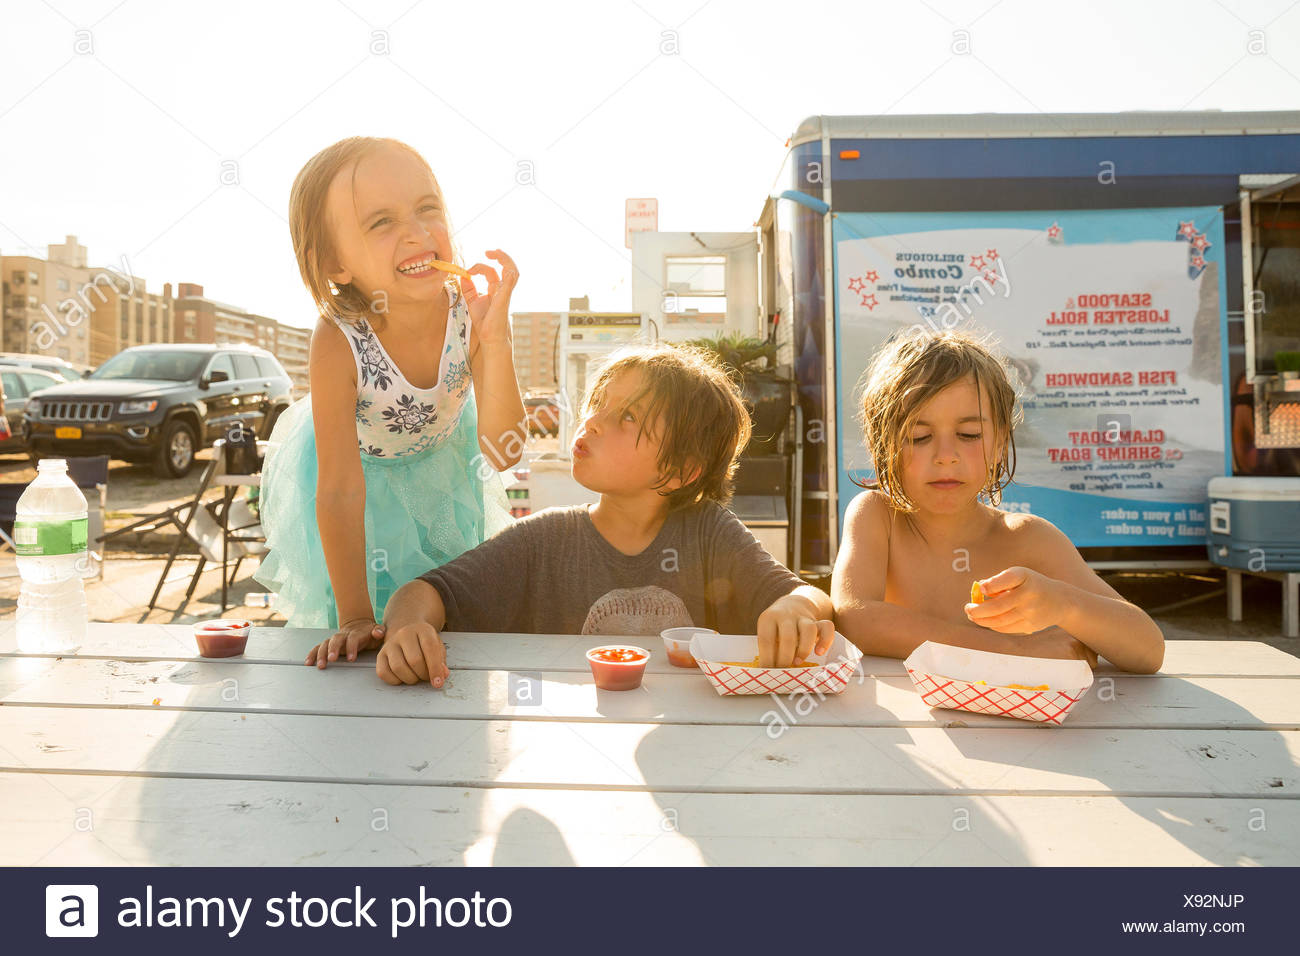 Group of children eating fast food beside fast food trailer - Stock Image